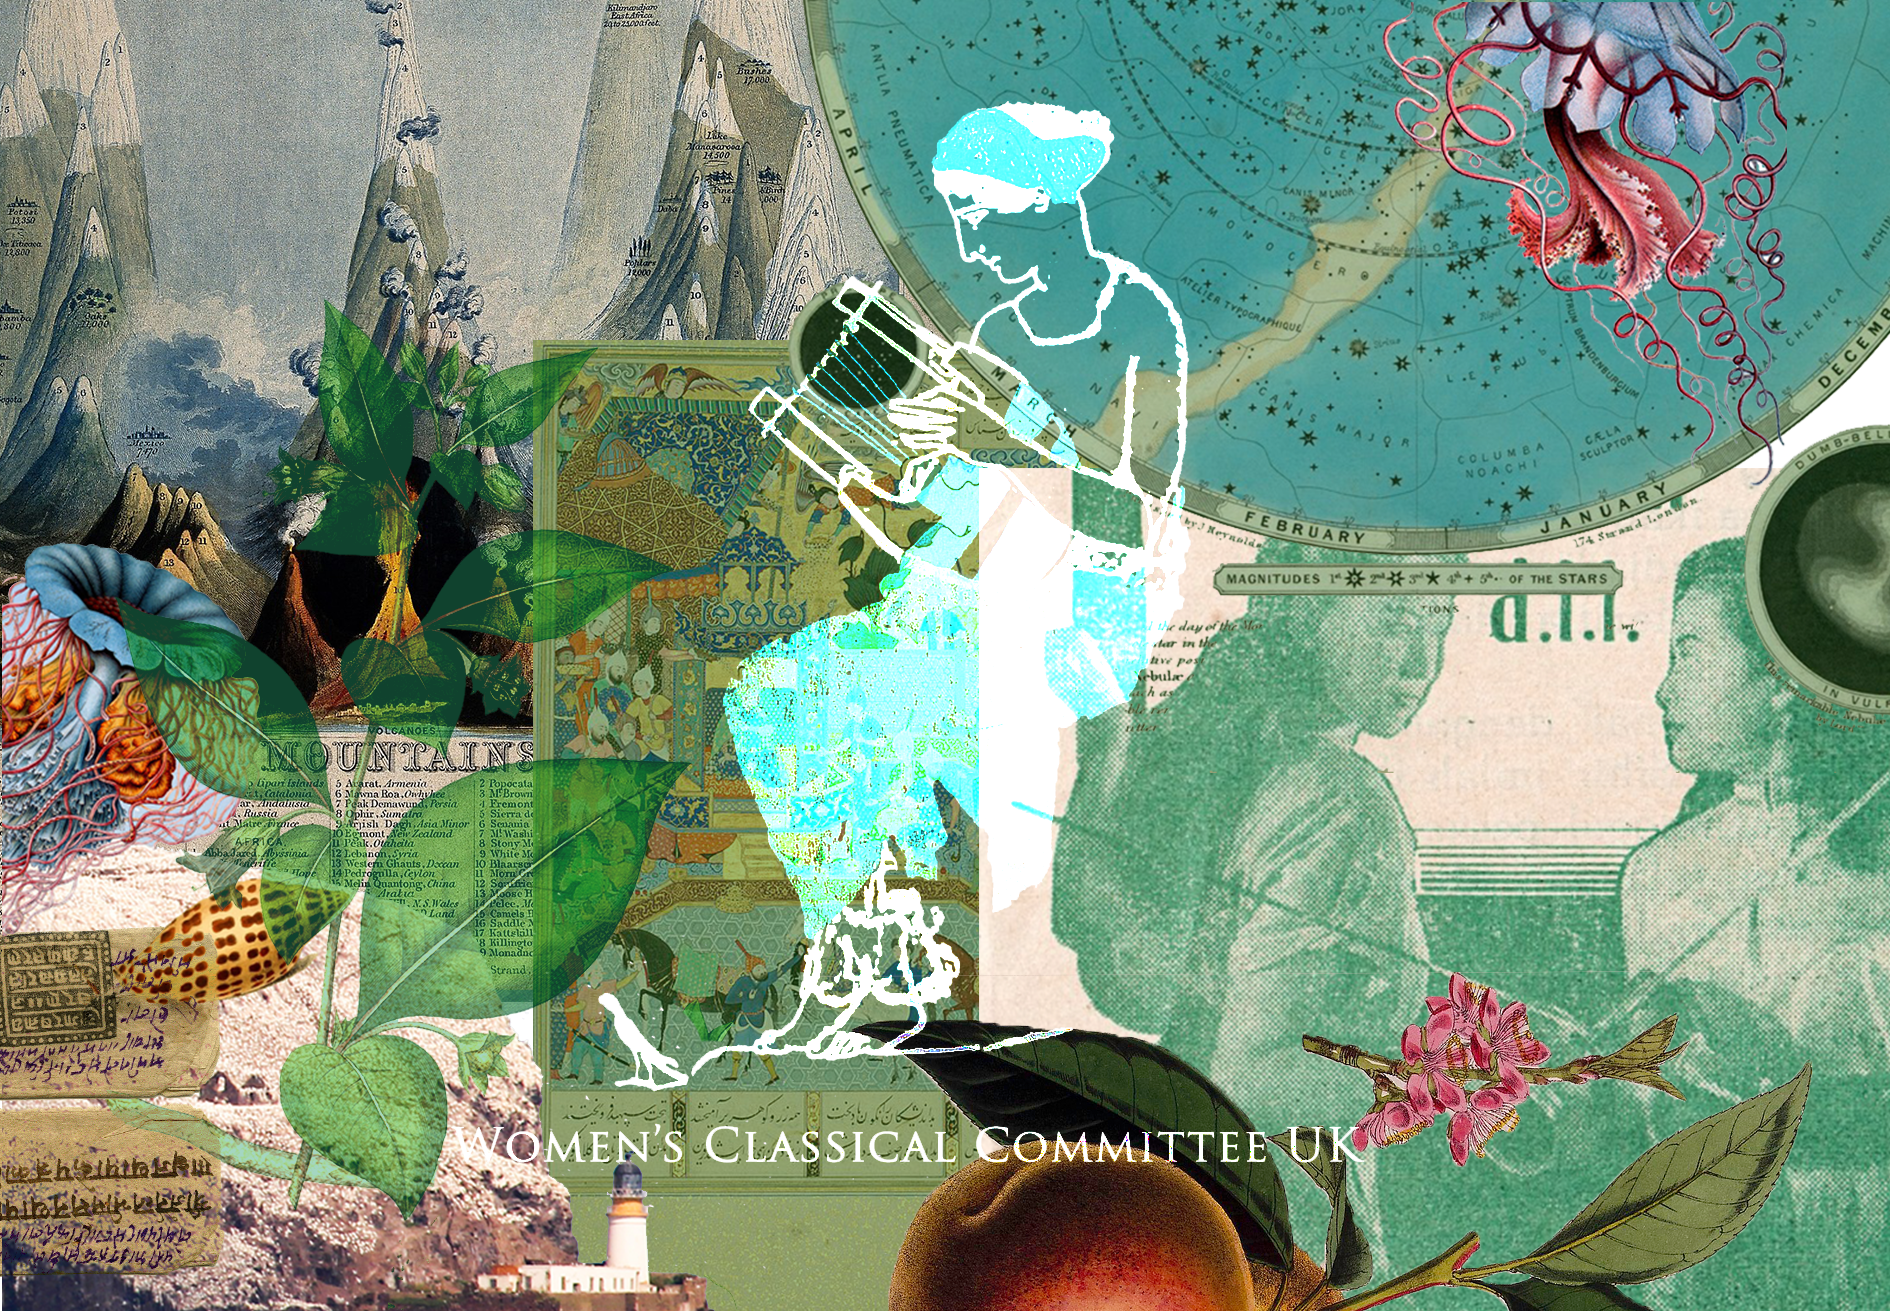 Women's Classic Committee, collage